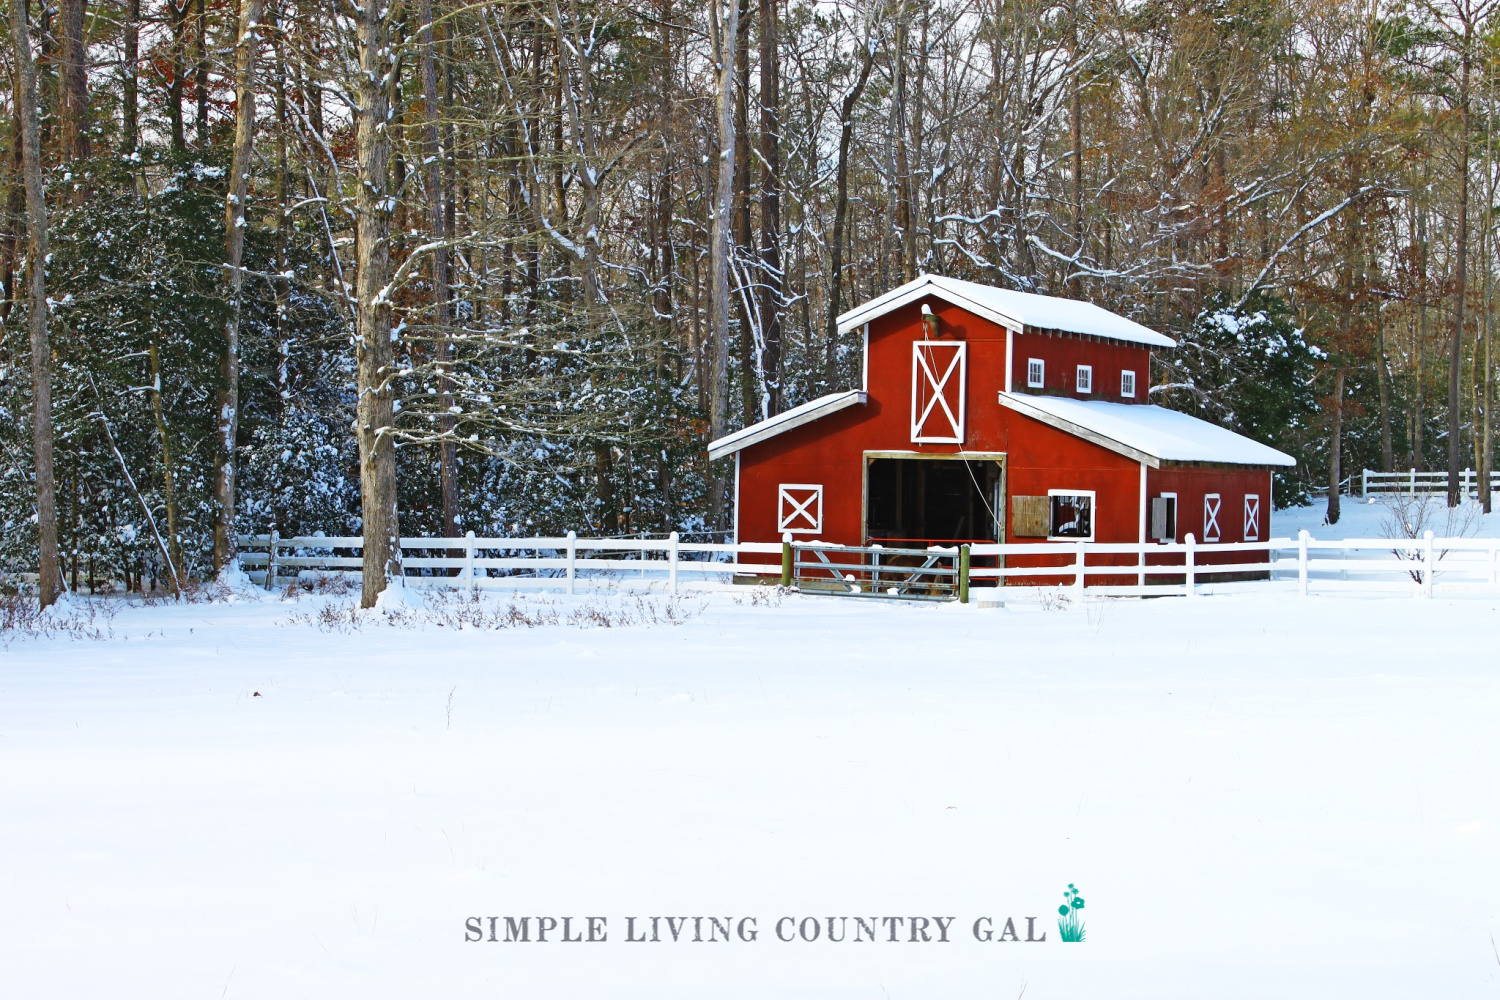 red barn in the snow. gifts for simple living